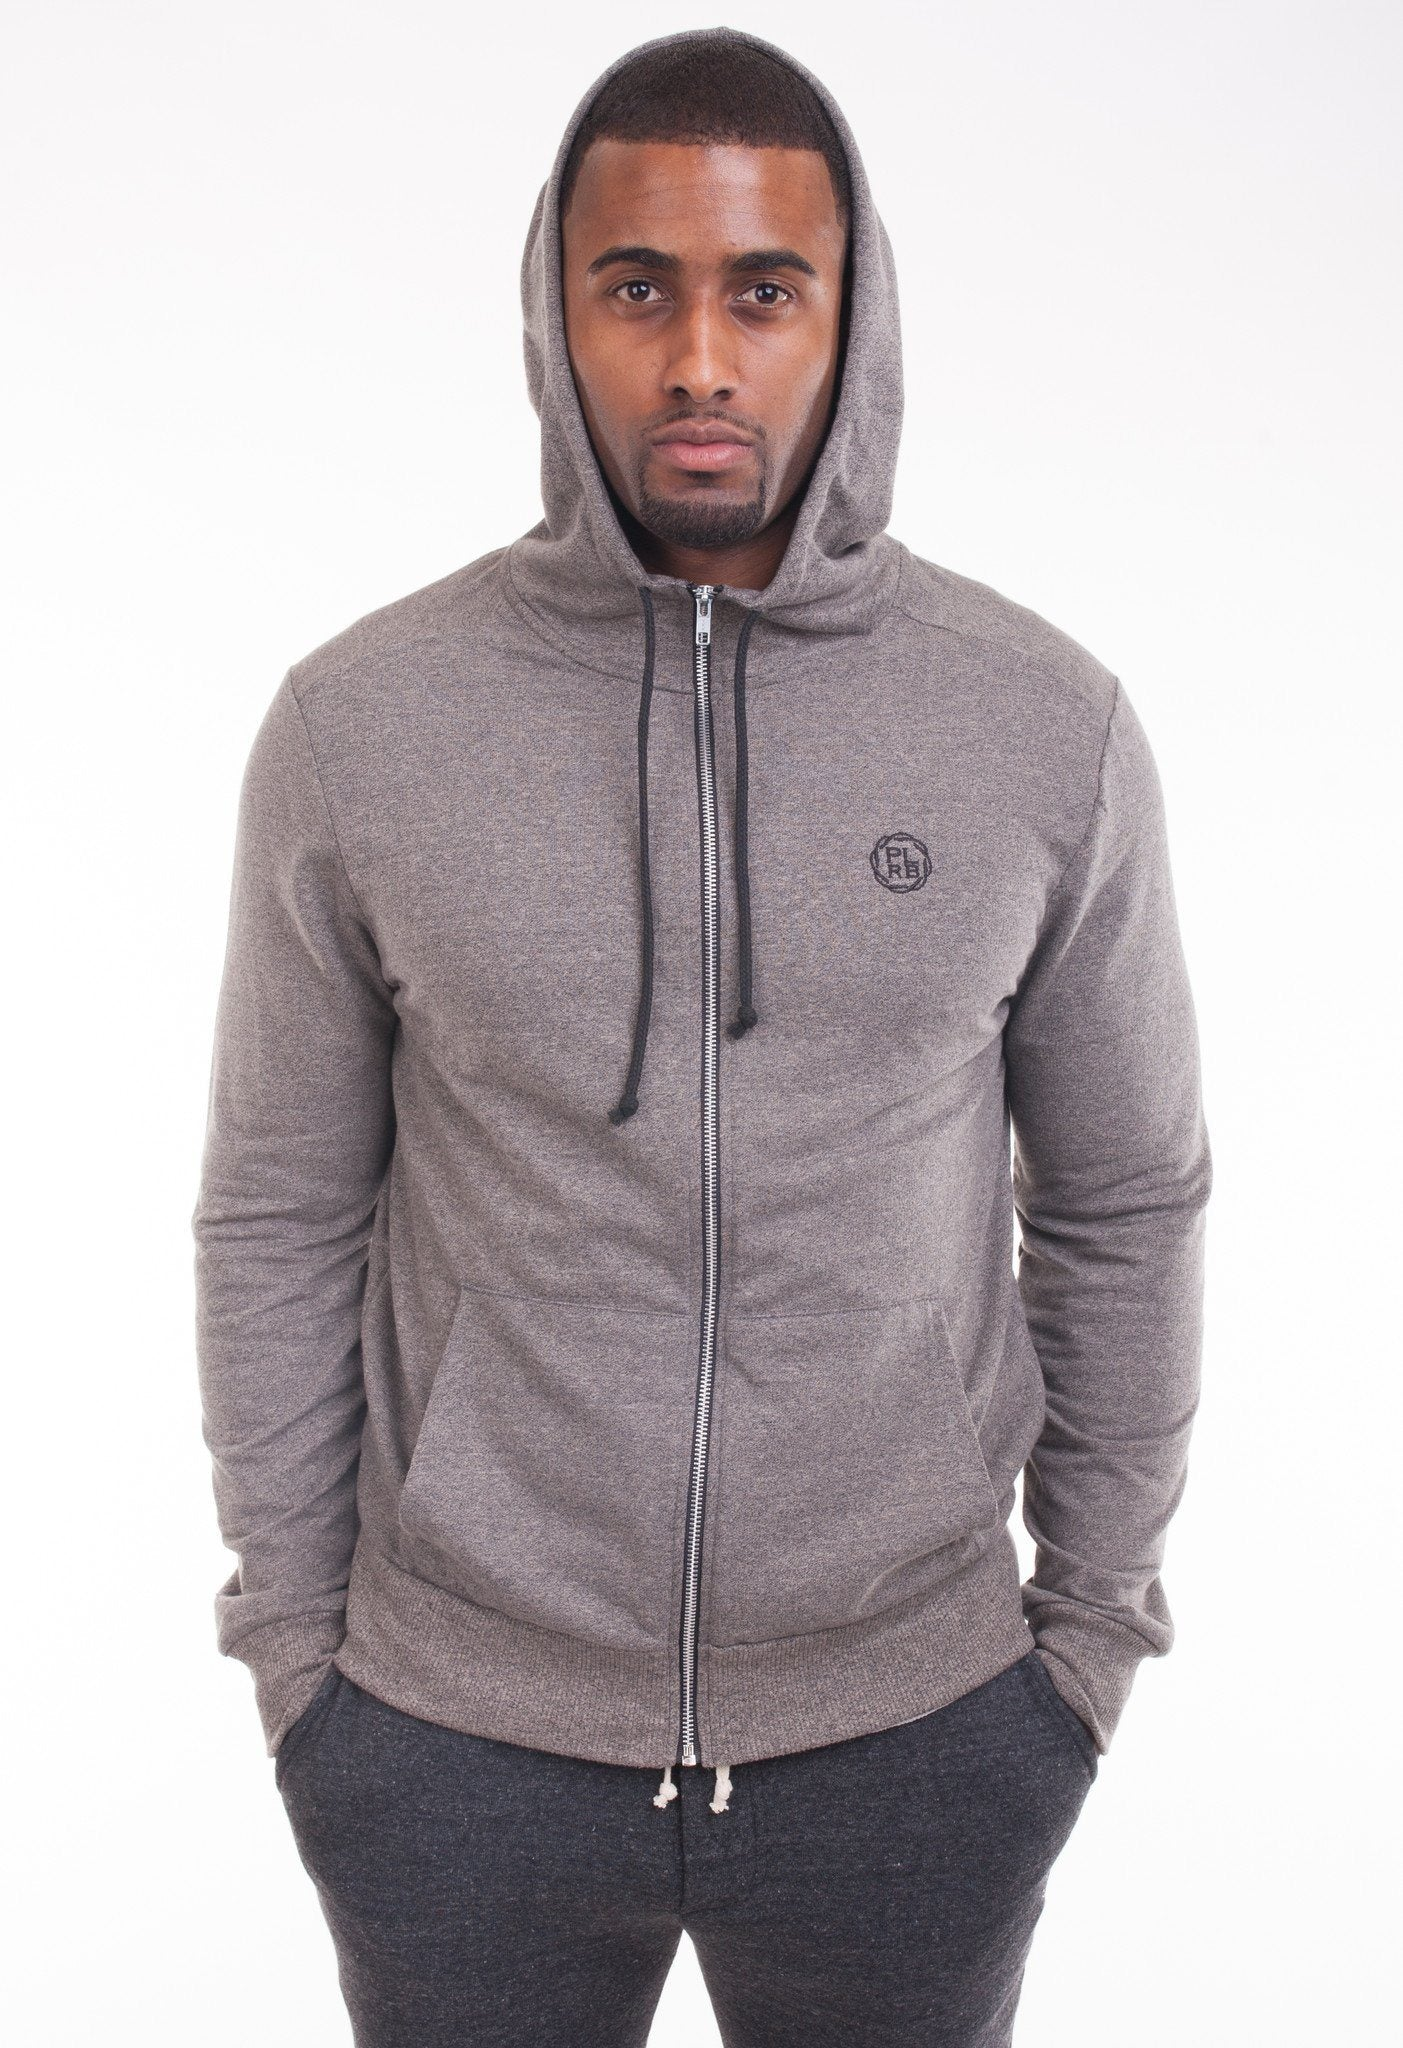 Ash Hooded Sweatshirt - Poor Little Rich Boy Men's Jackets and Outerwear - Plrbclothing.com